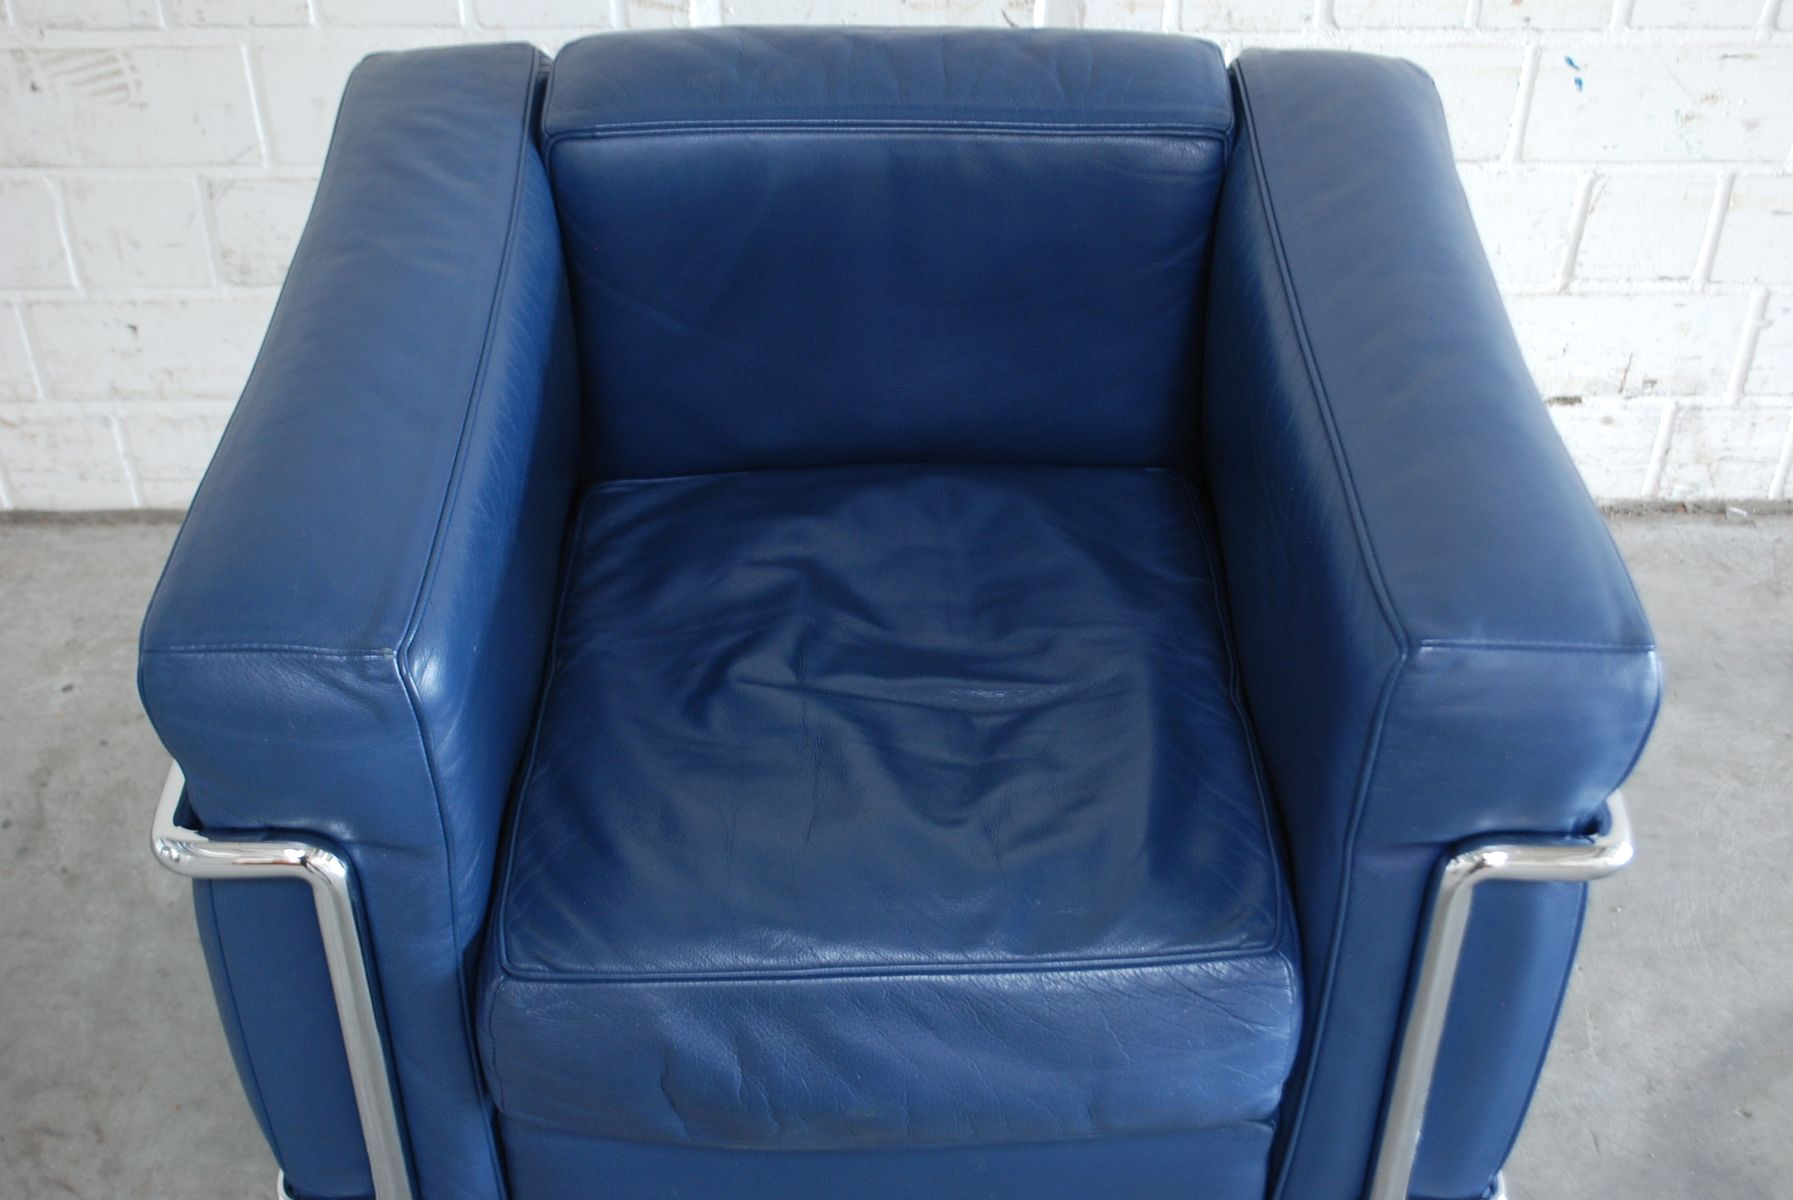 Le corbusier chair vintage - Vintage Blue Model Lc2 Leather Chair By Le Corbusier For Cassina